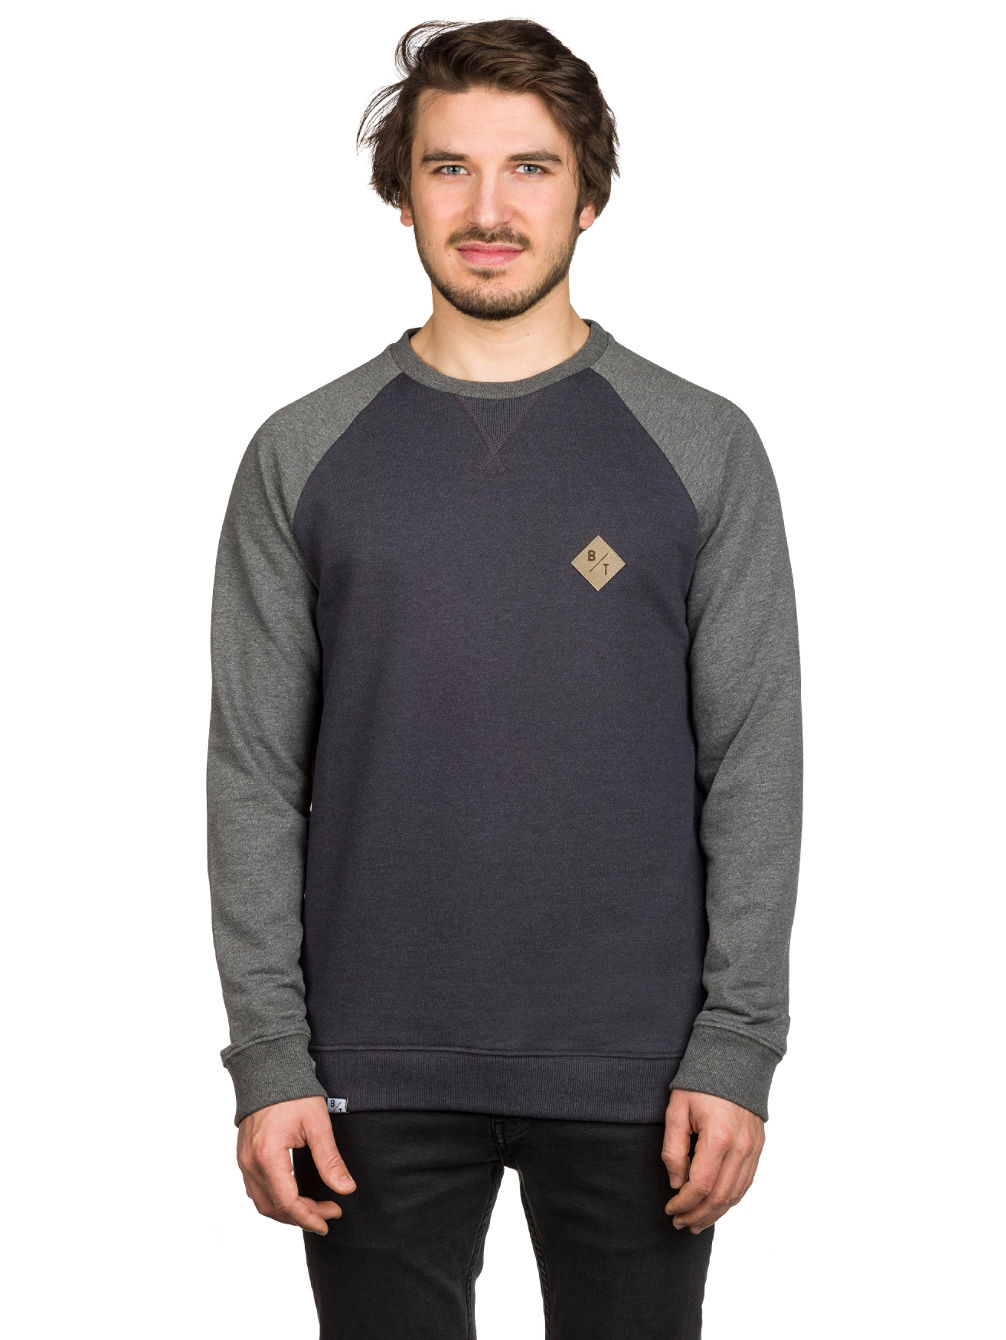 BT Crewneck Sweater